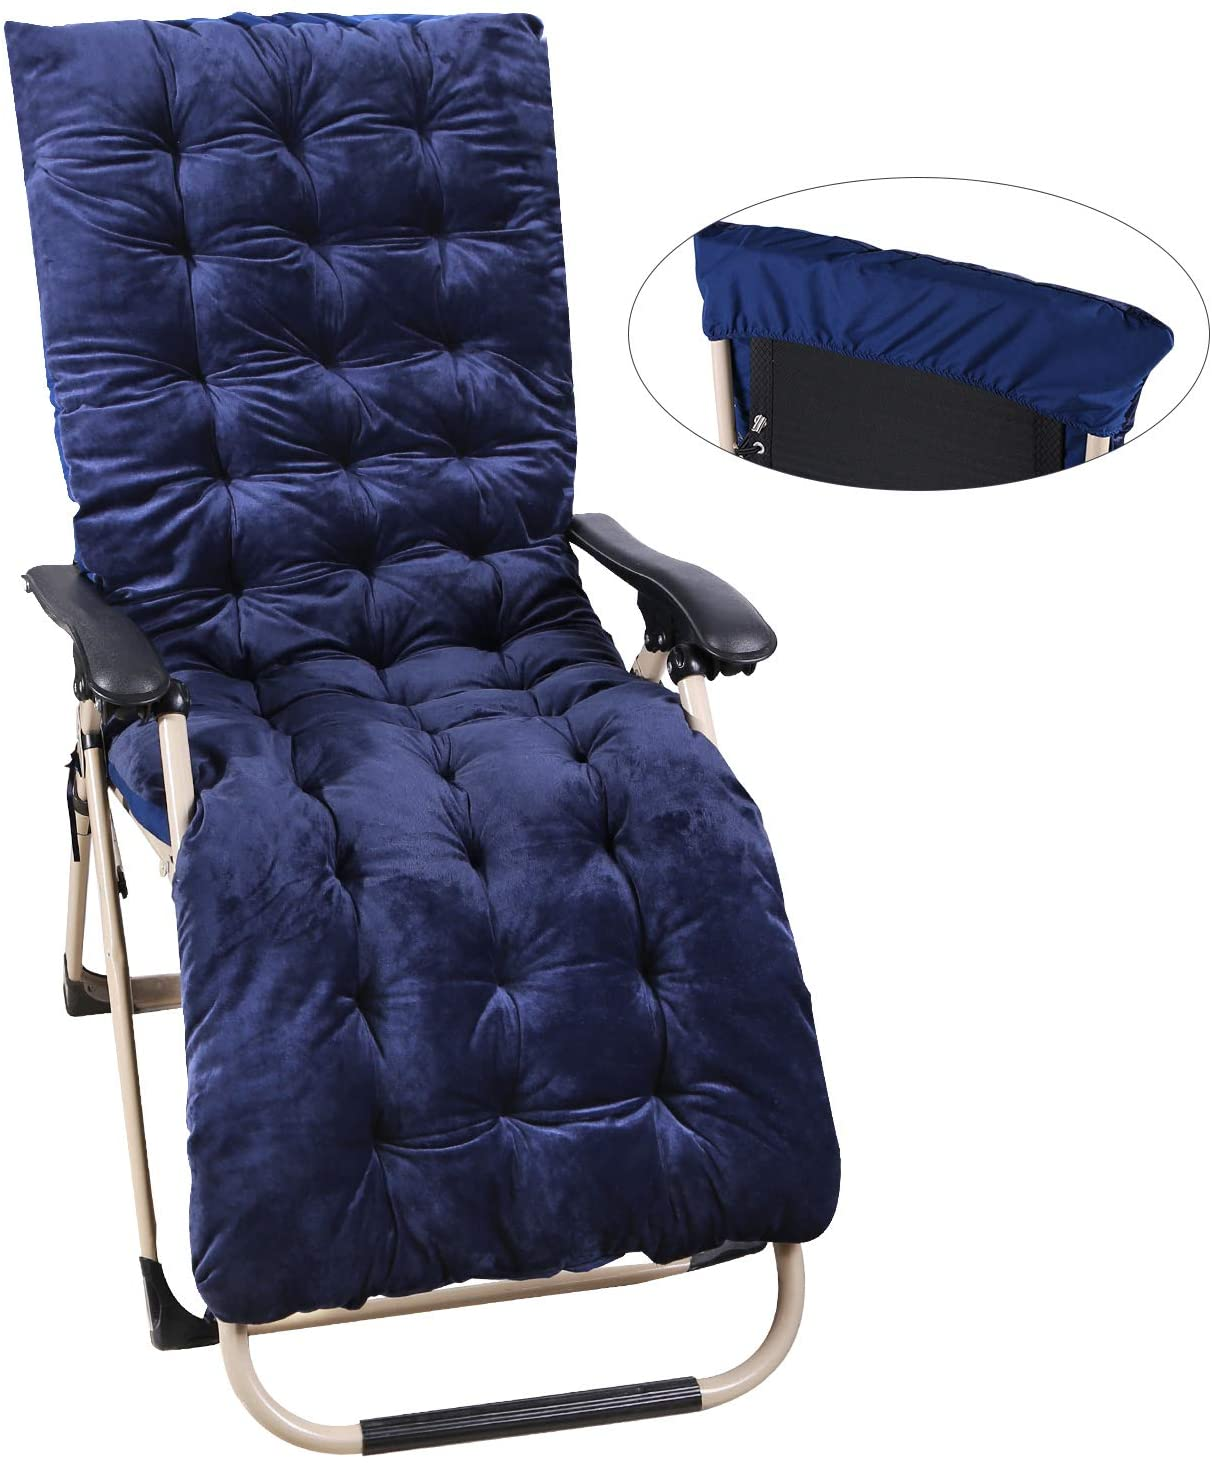 REDCAMP Chaise Lounge Cushion for Patio Furniture, 4